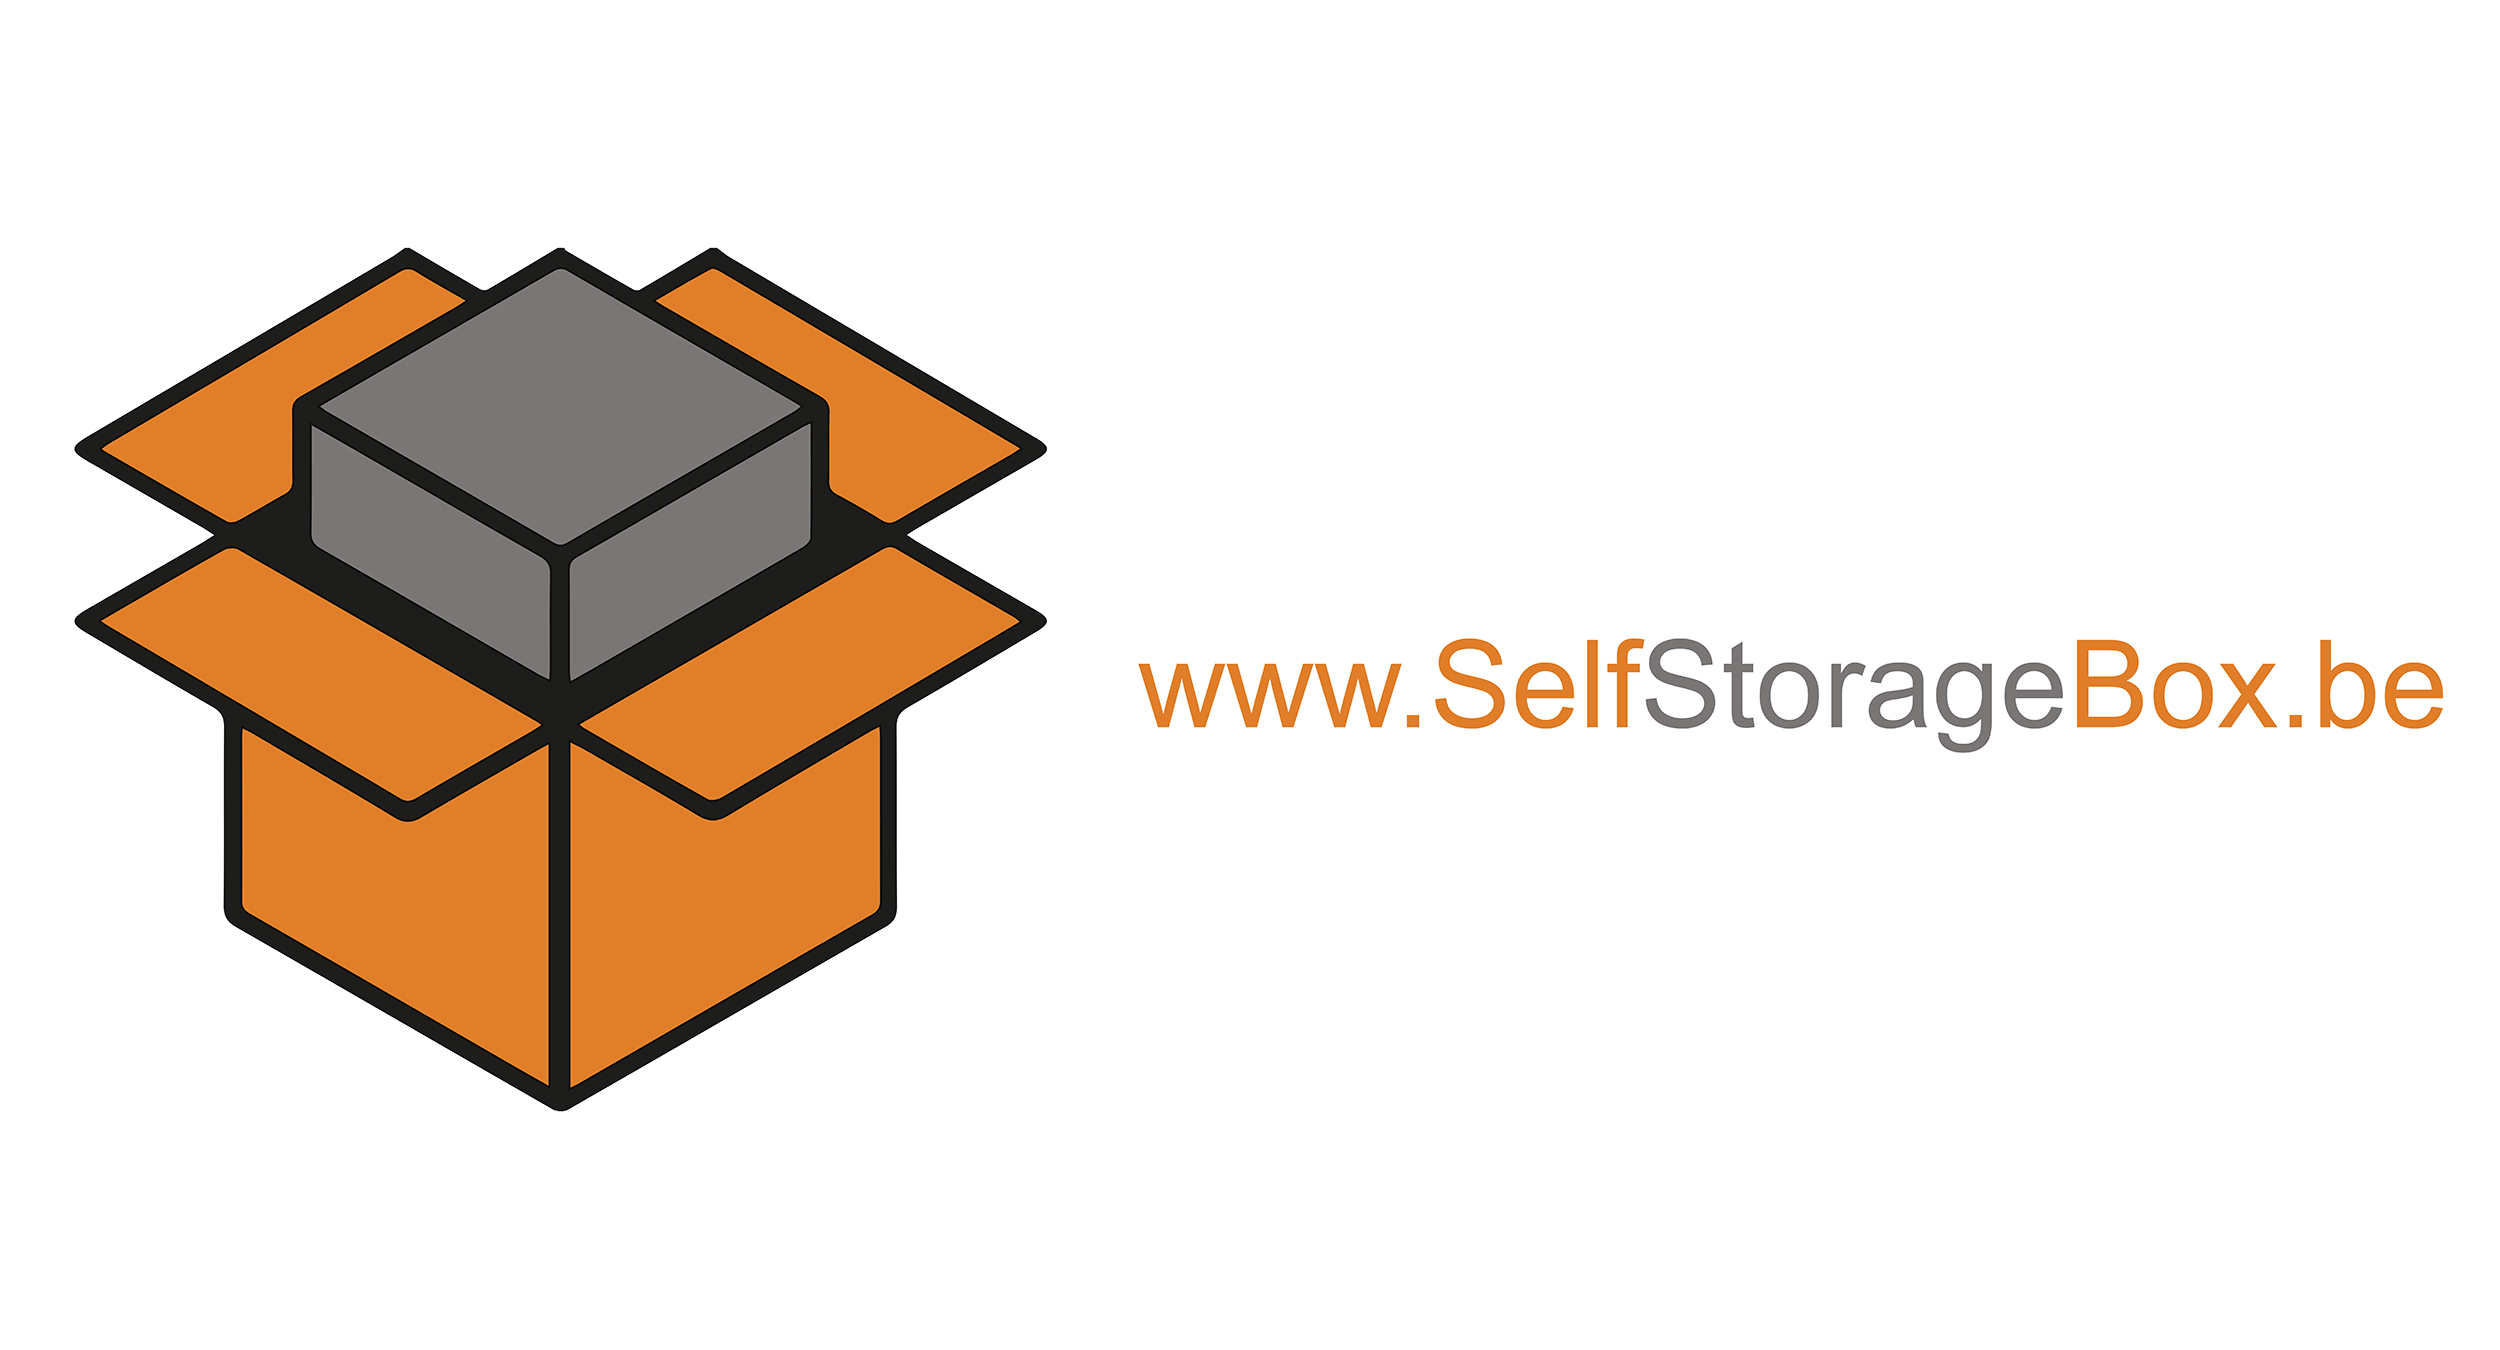 www.selfstoragebox.be